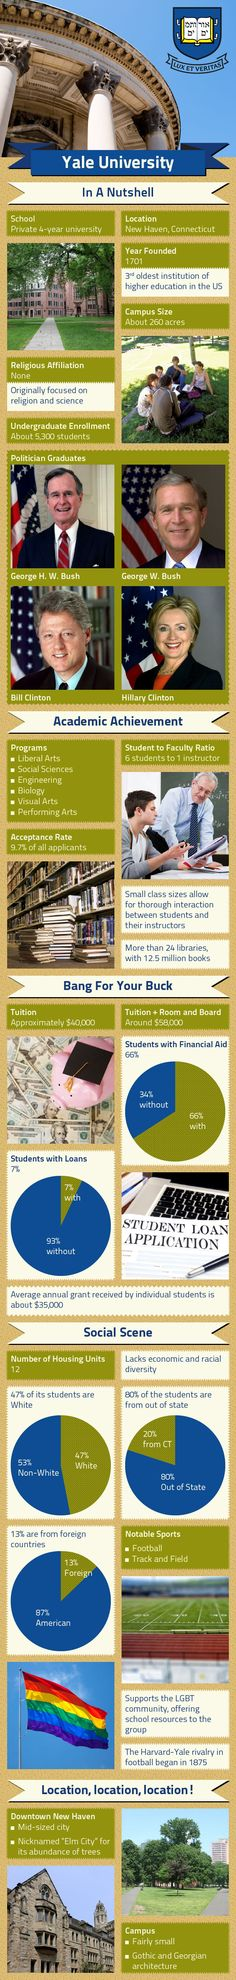 http://www.mapsofworld.com/pages/usa-universities/infographics/yale-university-infographic/